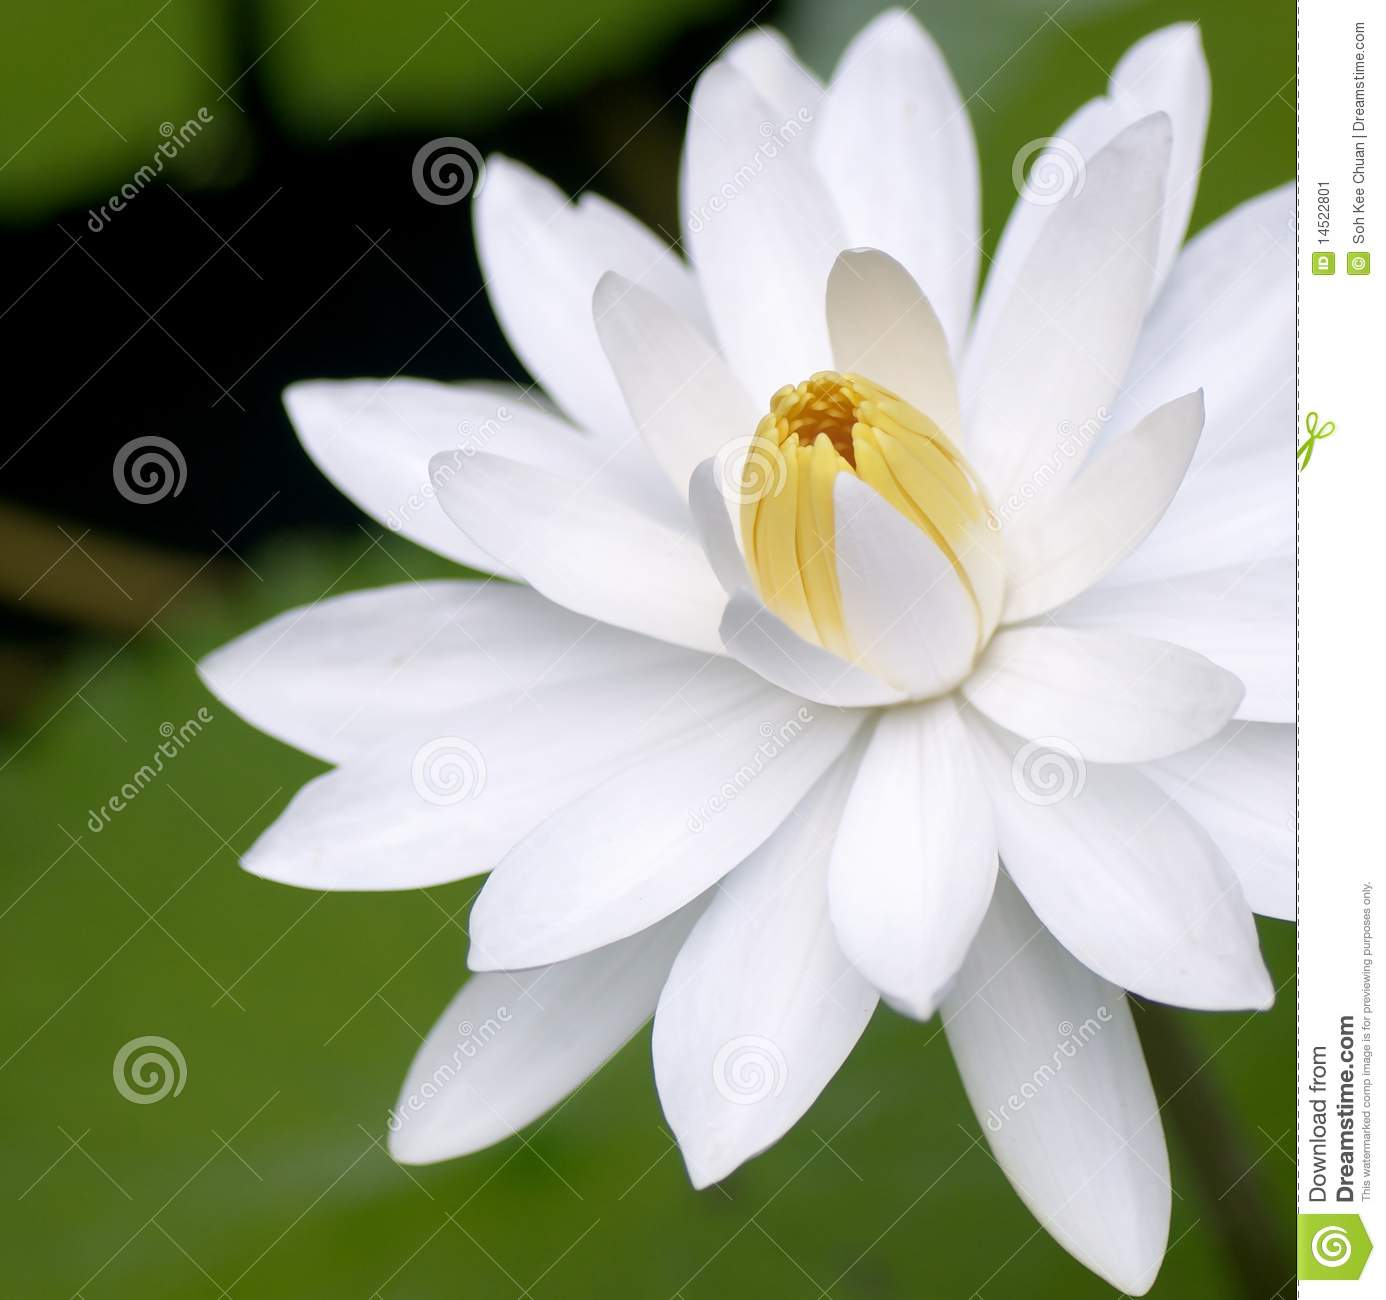 Blooming White Water Lily Flower Stock Image Image Of Blooming